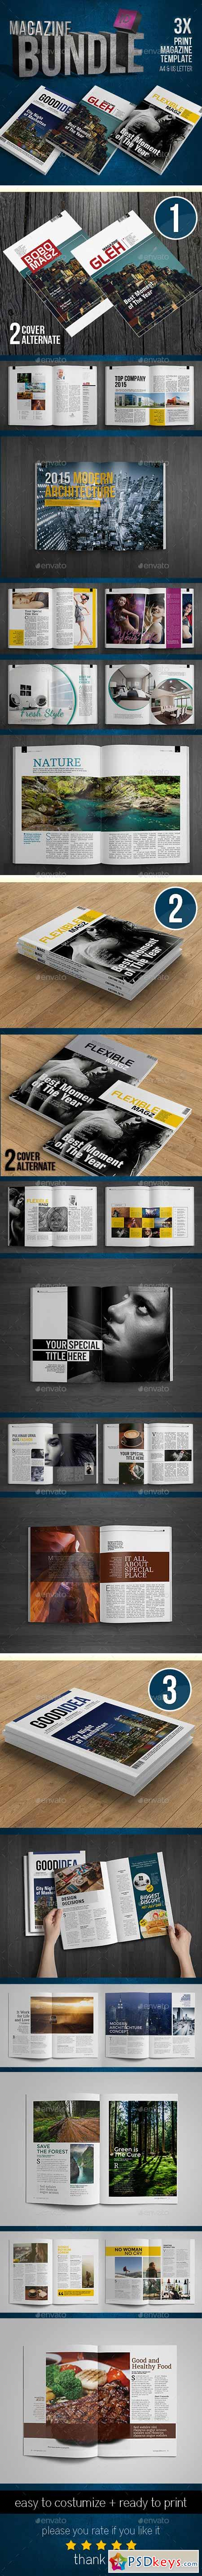 Indesign Magazine Bundle 12617555 » Free Download Photoshop Vector ...